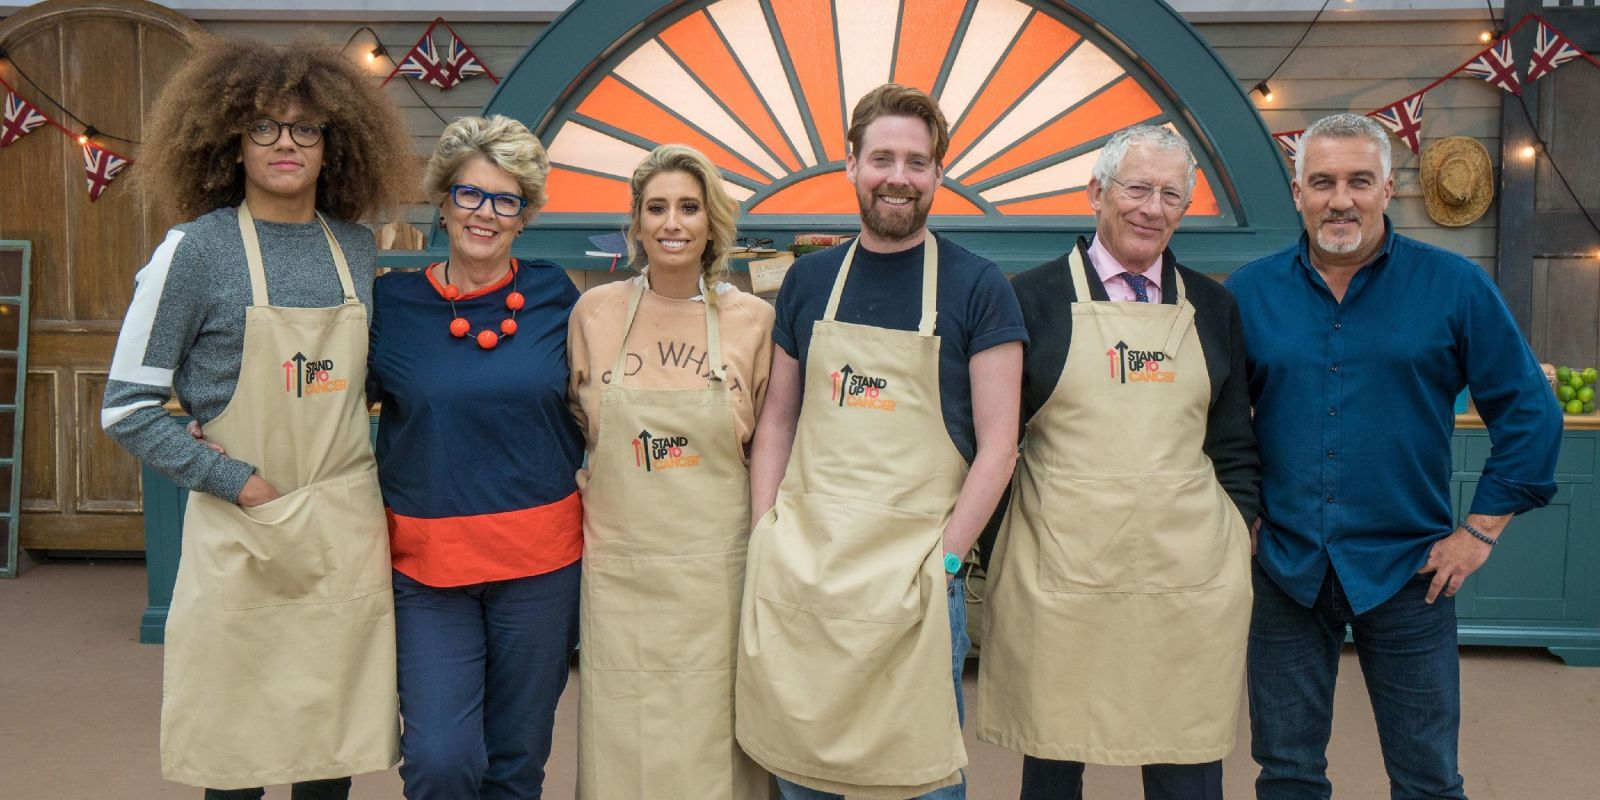 The Great Celebrity Bake Off continues in disastrous fashion, but whose win as Star Baker saved the day?